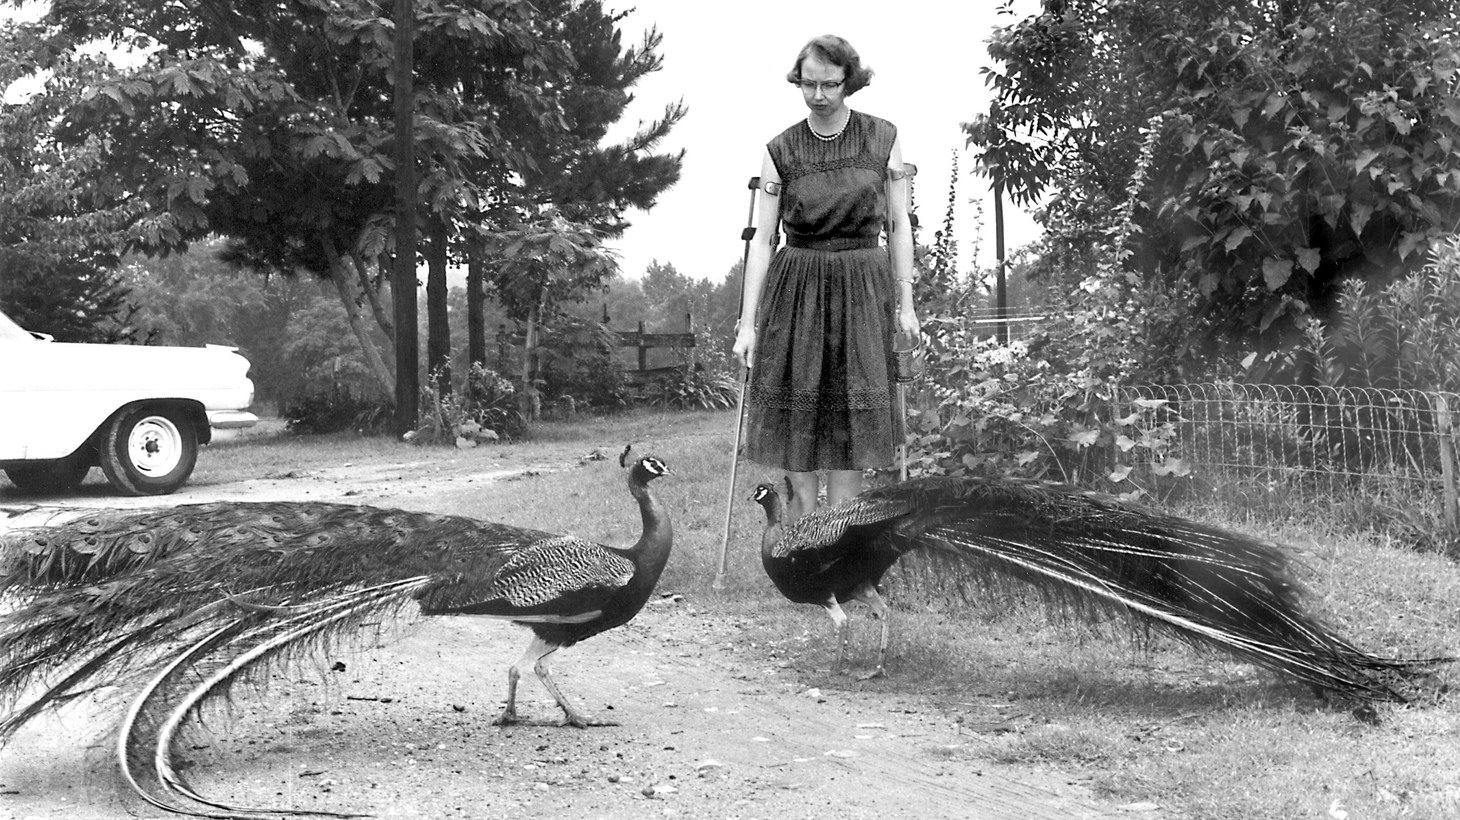 """Flannery"" is a documentary about American novelist Flannery O'Connor."